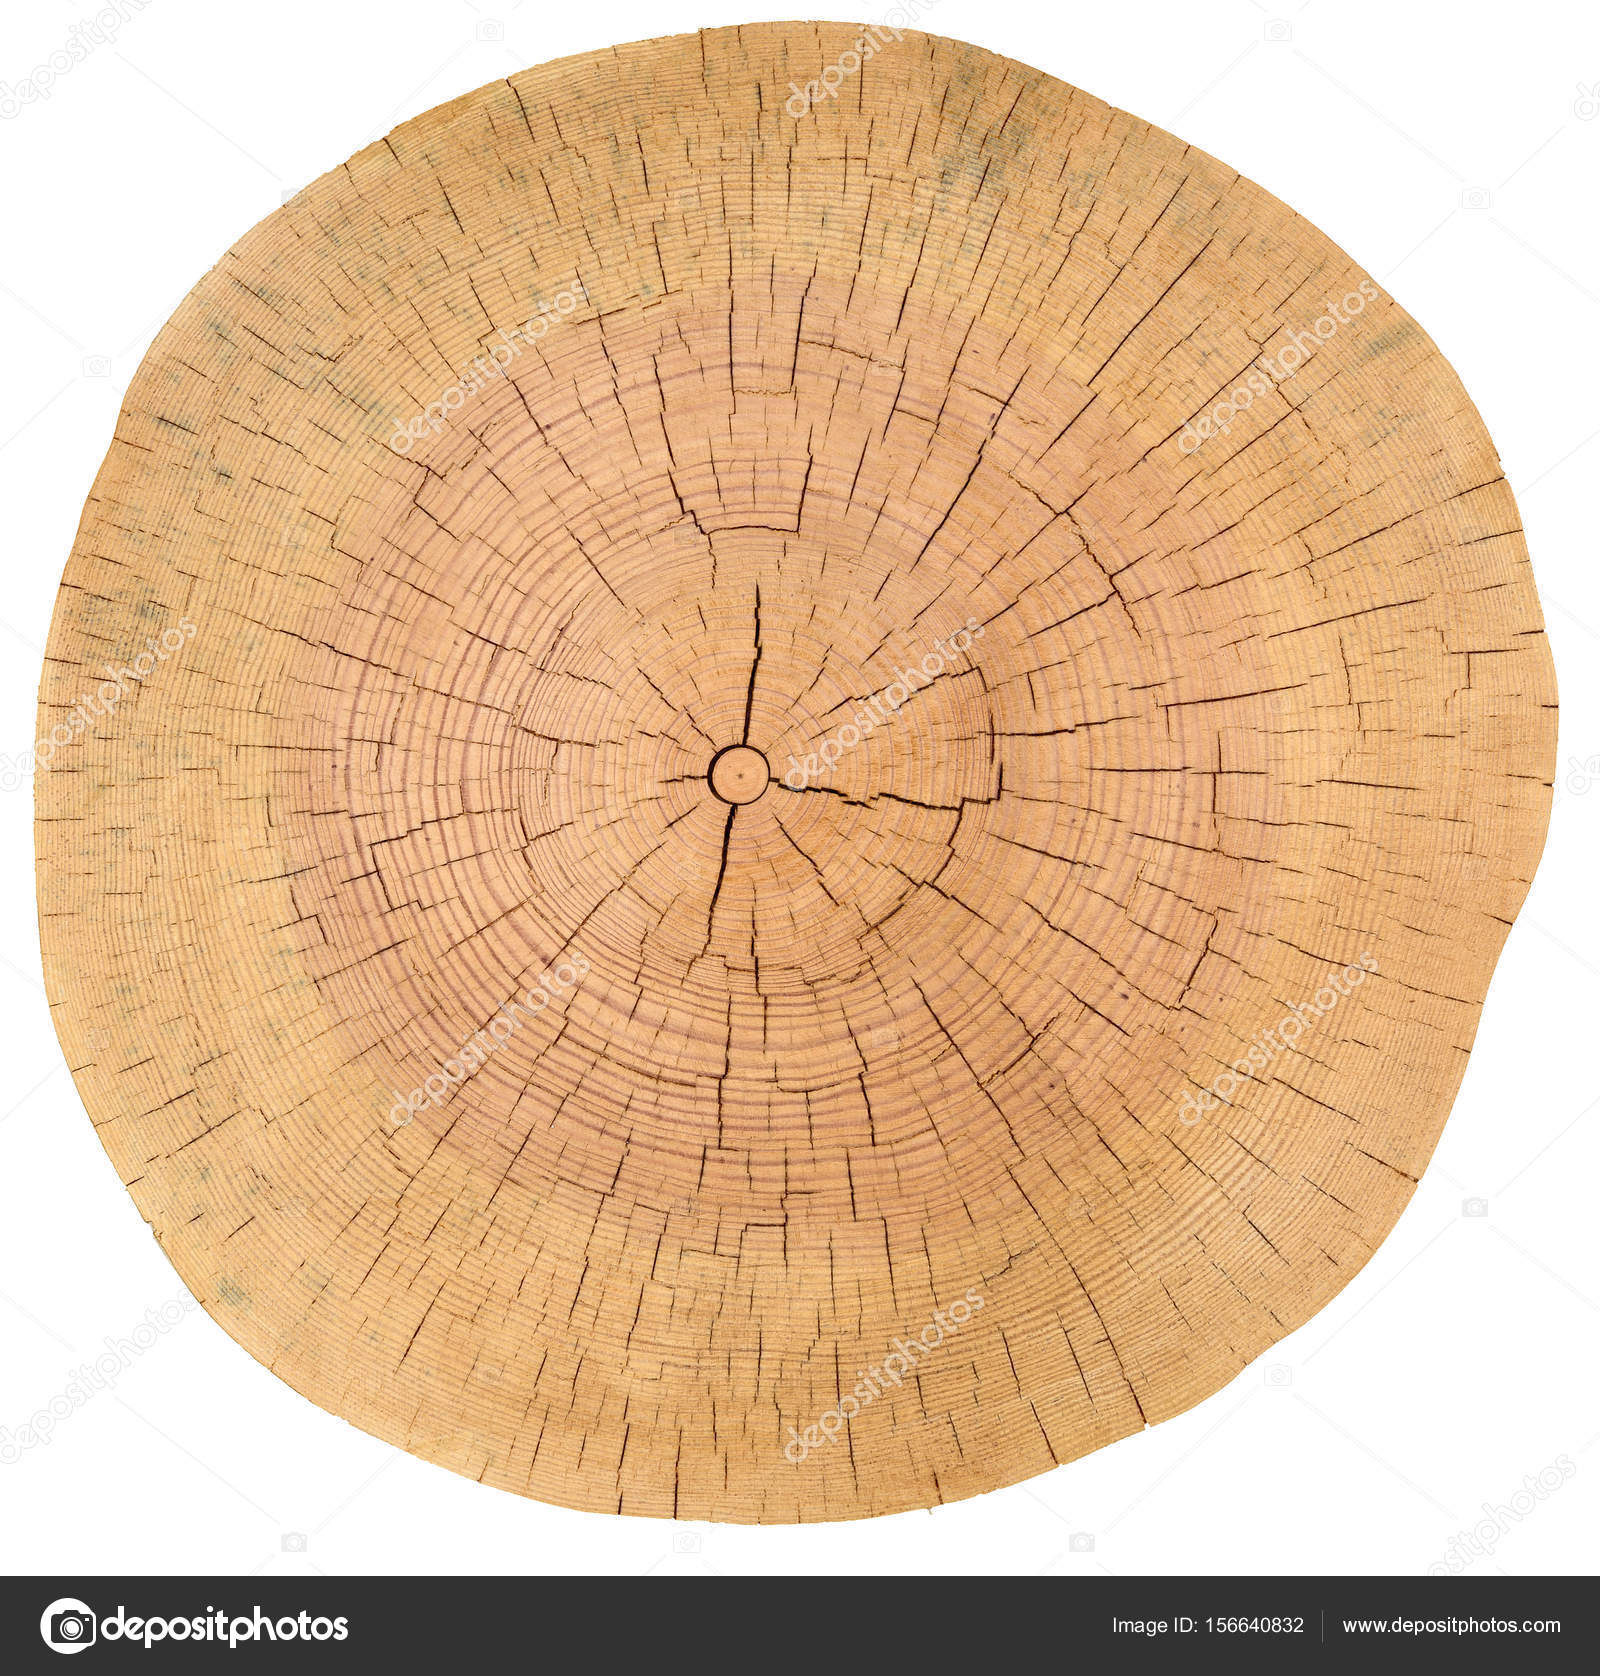 circle tree cracked slice rings texture wood lumber photo stock image background of